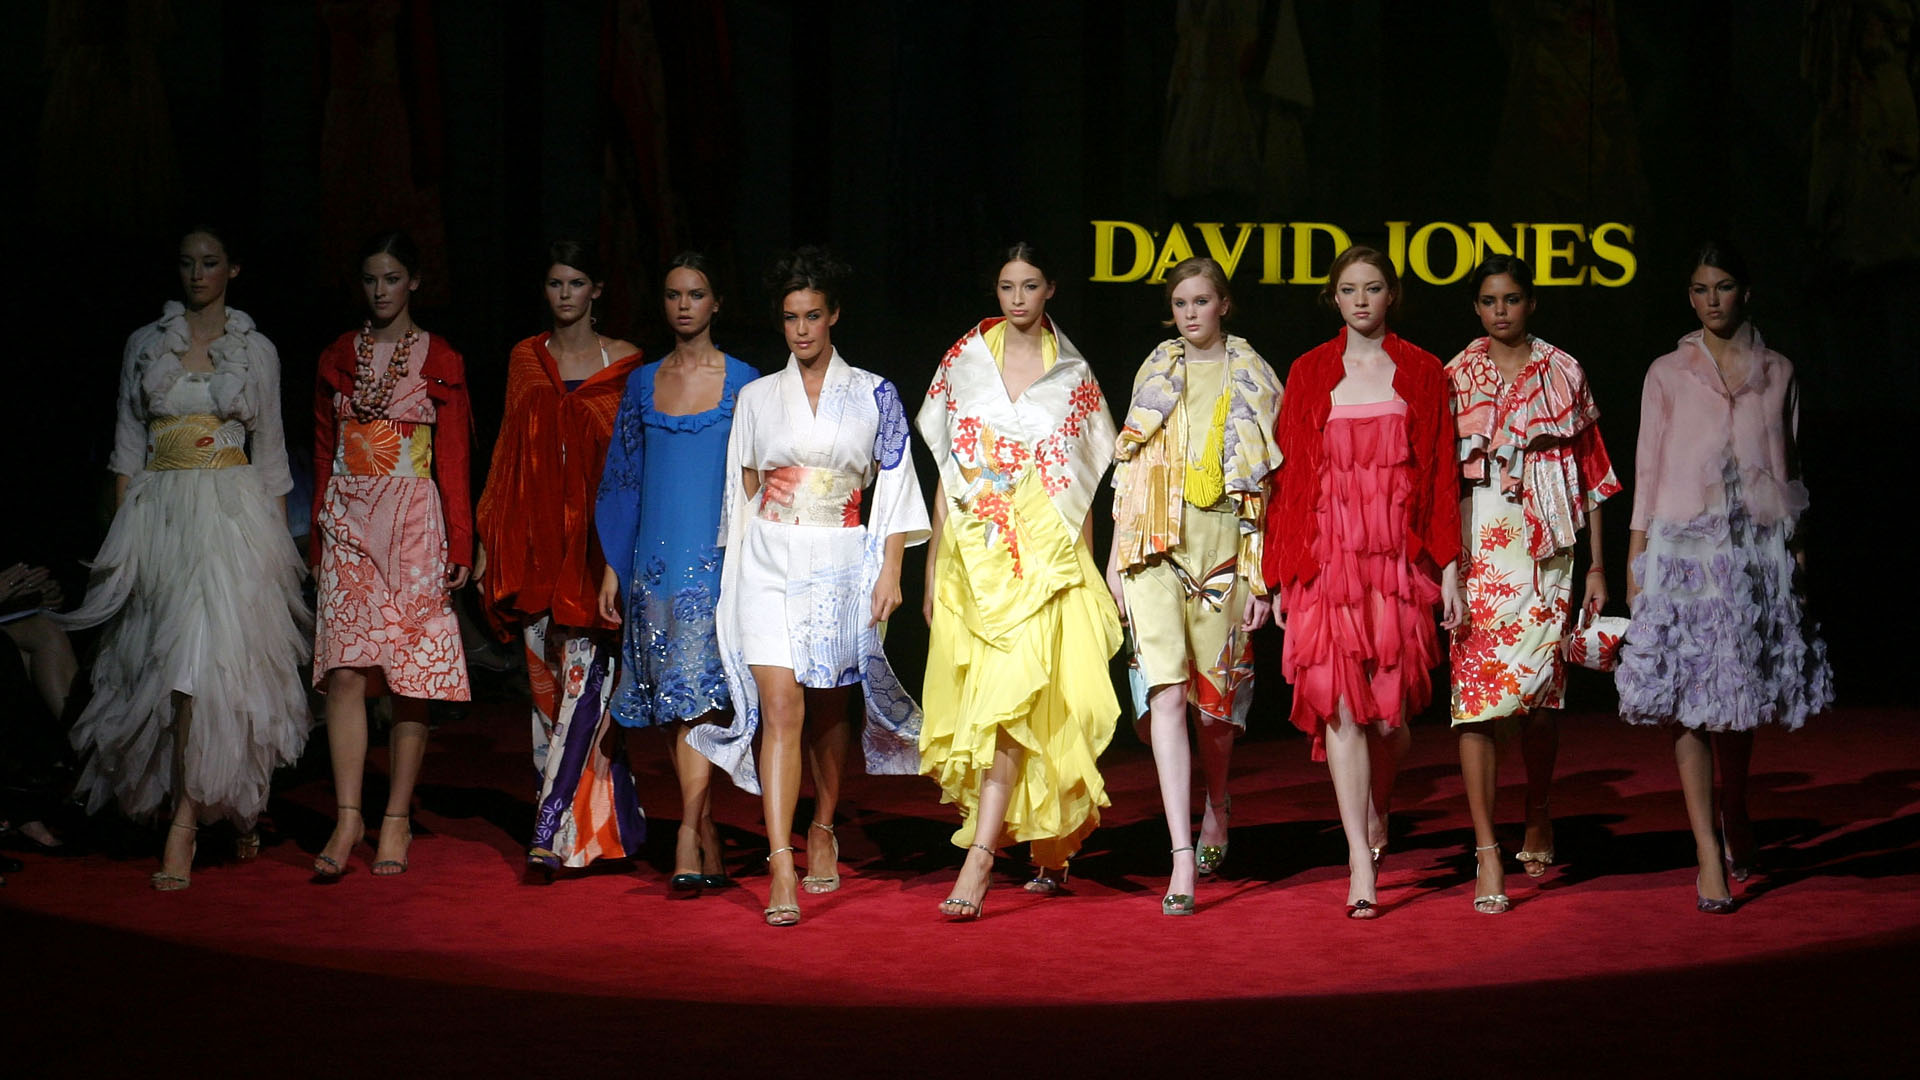 David Jones Winter Collection 2006